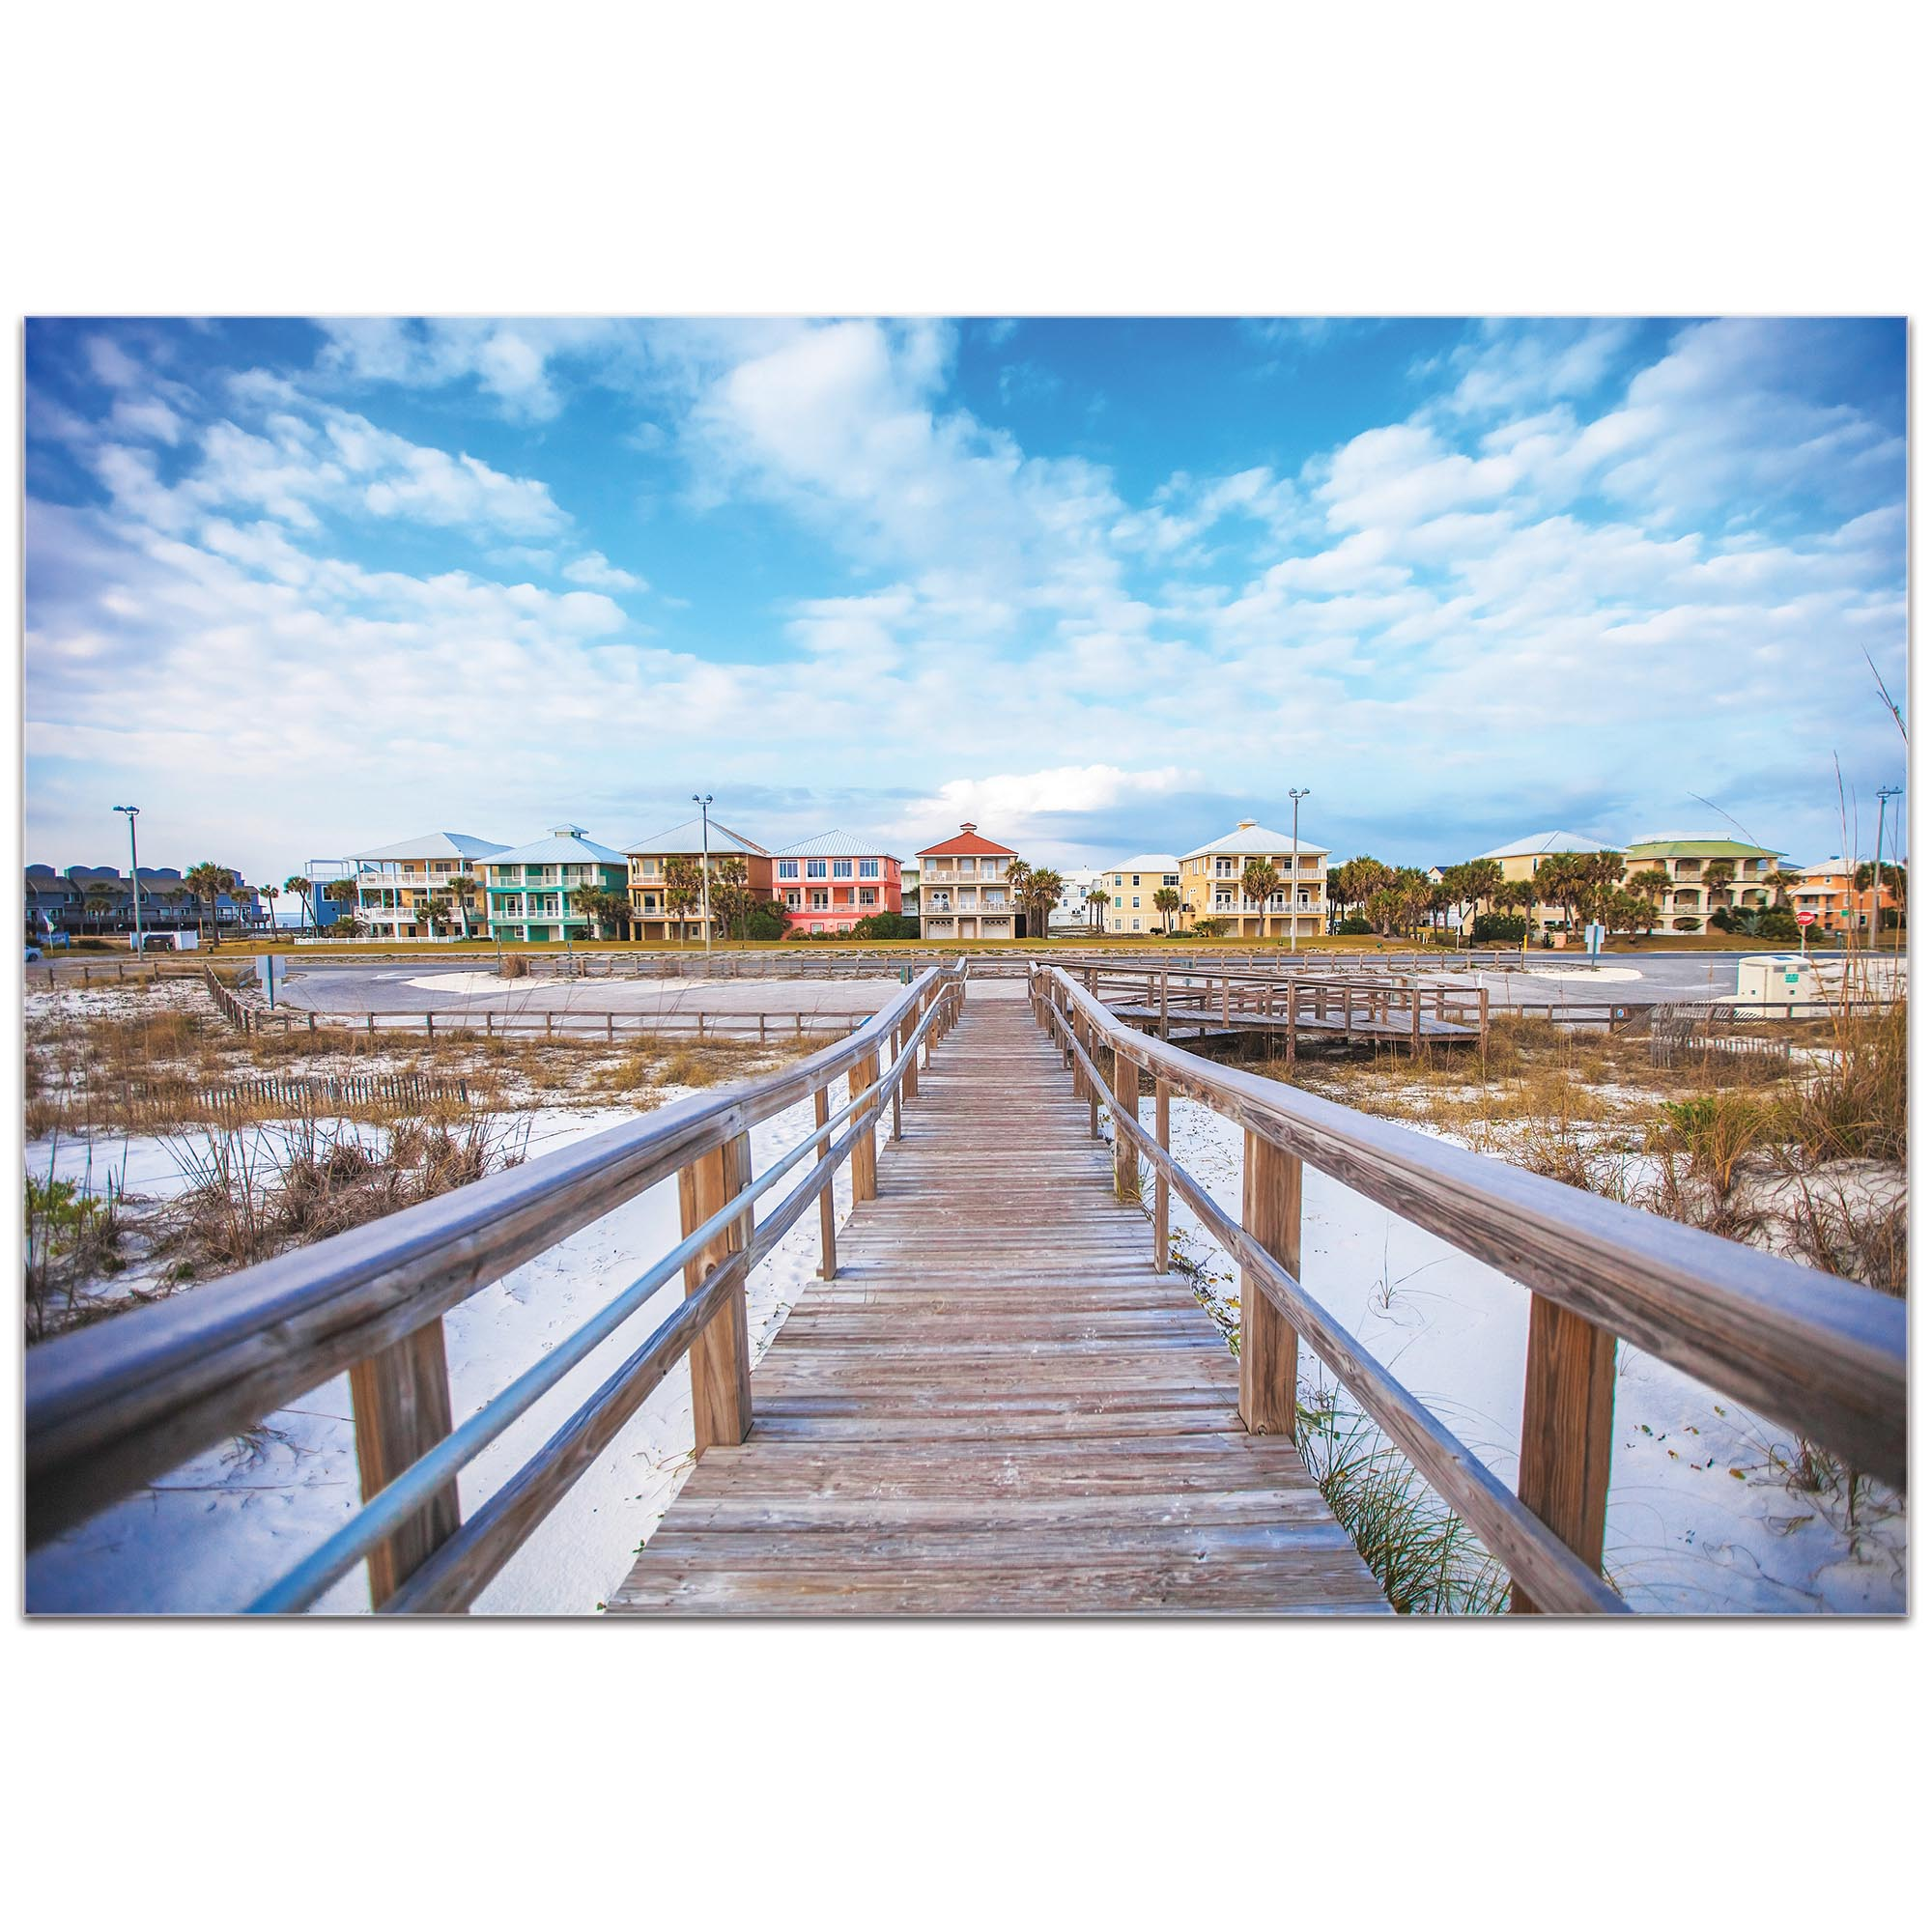 Coastal Wall Art 'Gulf Path' - Bridges Decor on Metal or Plexiglass - Image 2